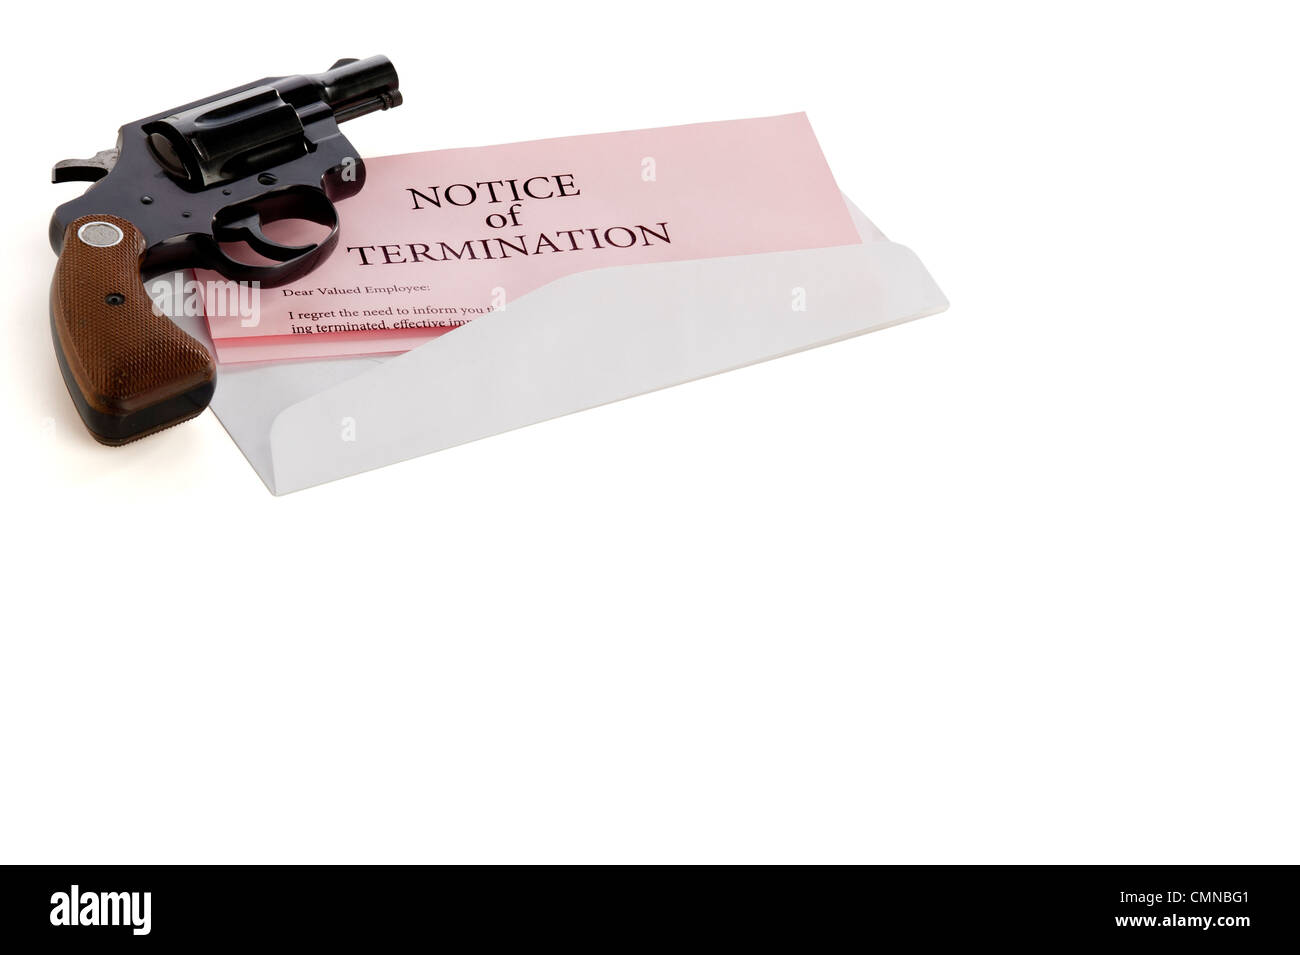 Pink slip termination notice lies on white background with a gun lying on top of it - Stock Image